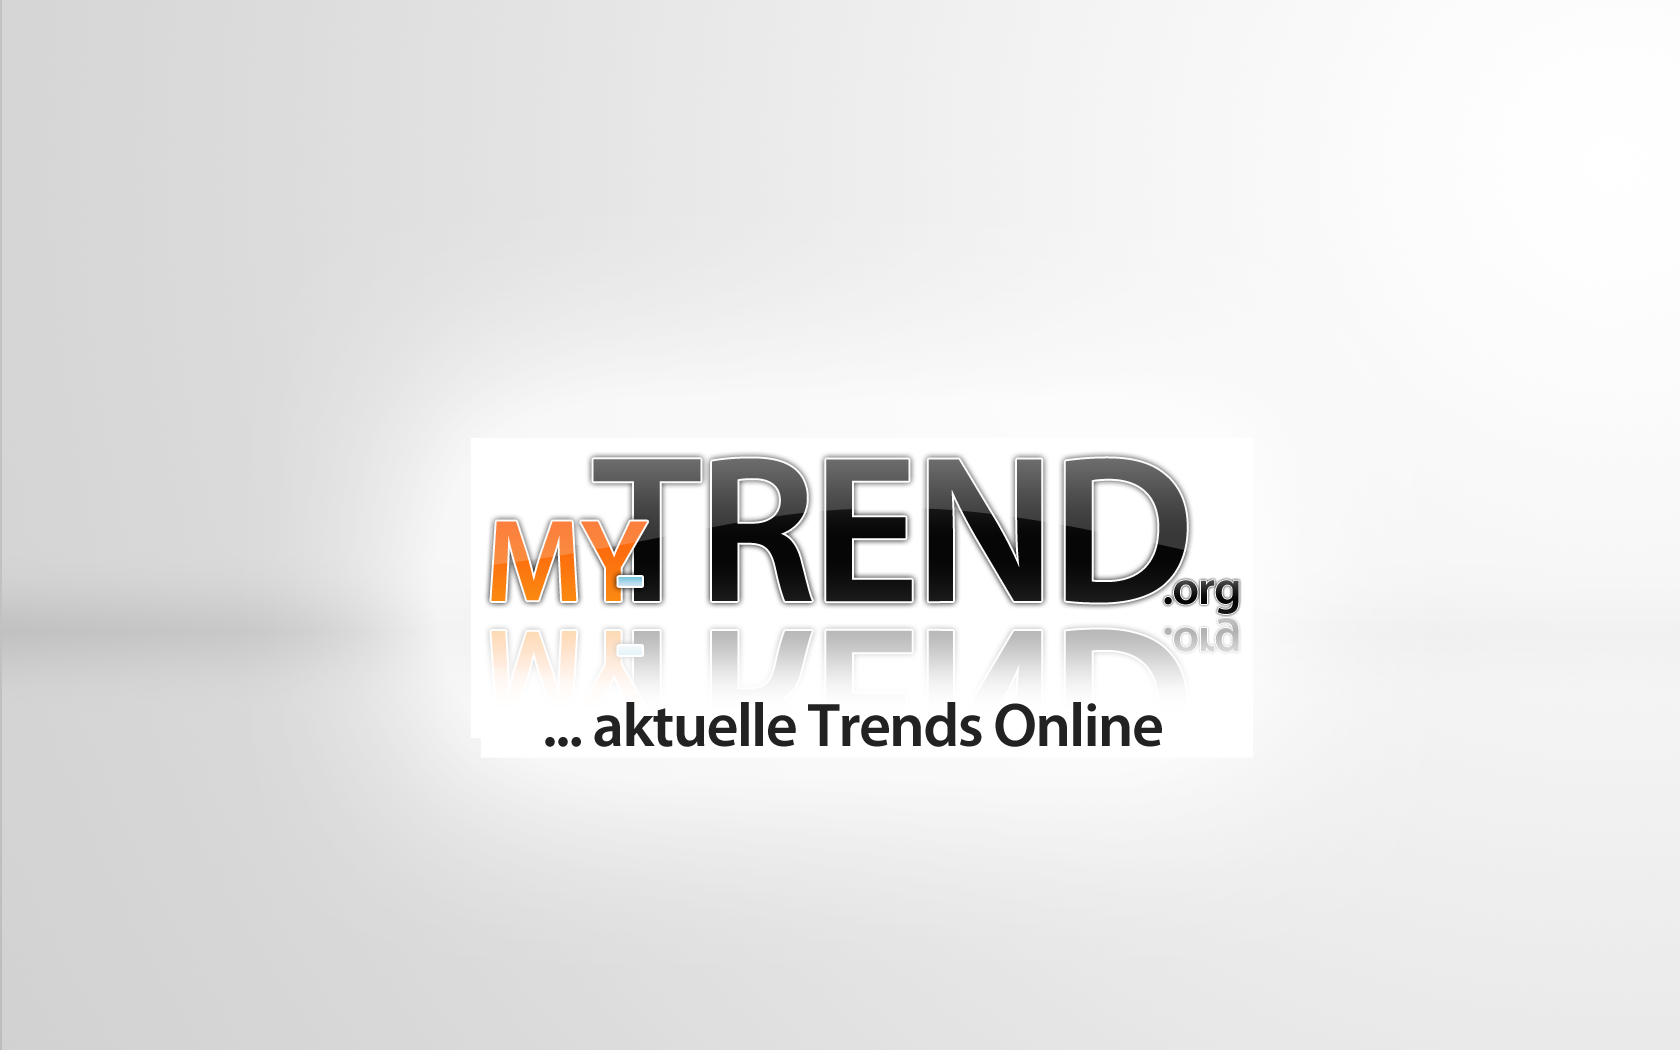 Stuff aktuelle Trends